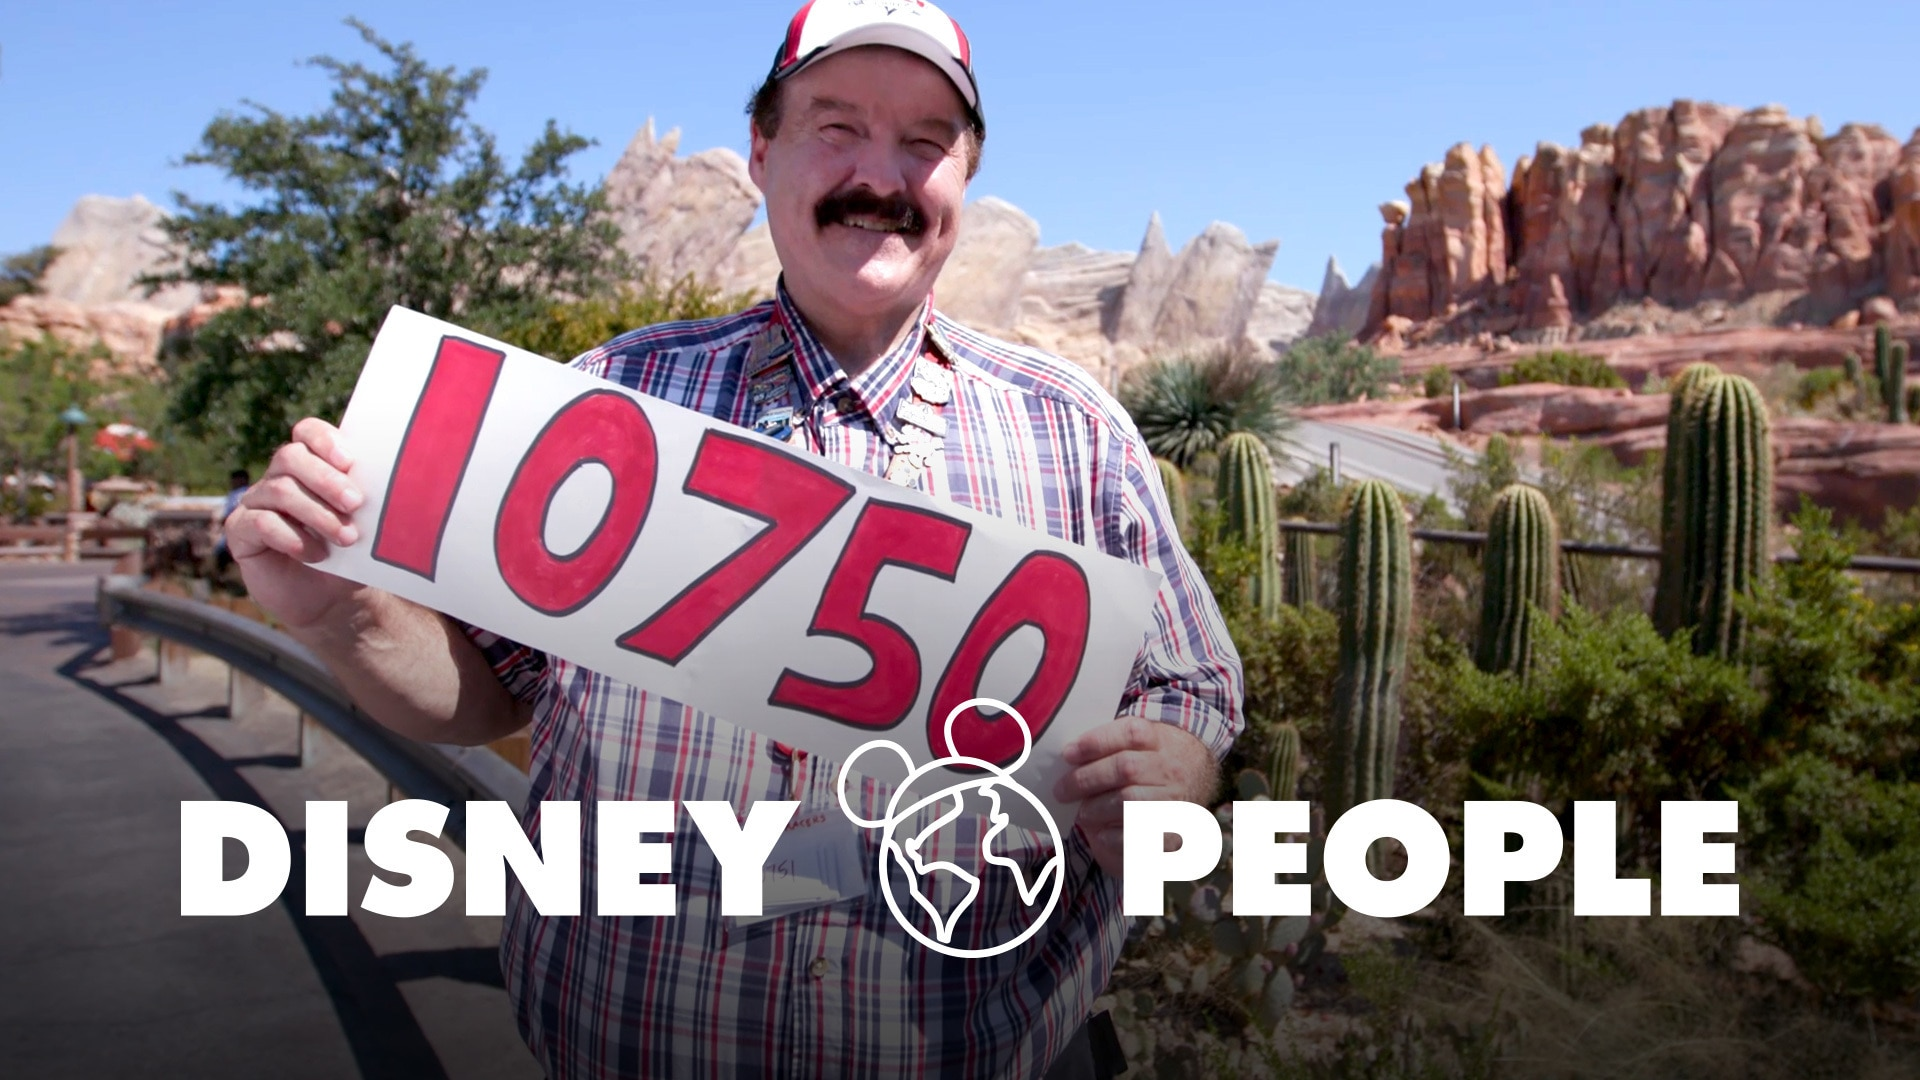 He Went on Radiator Springs Racers 10,750 Times | Disney People by Oh My Disney